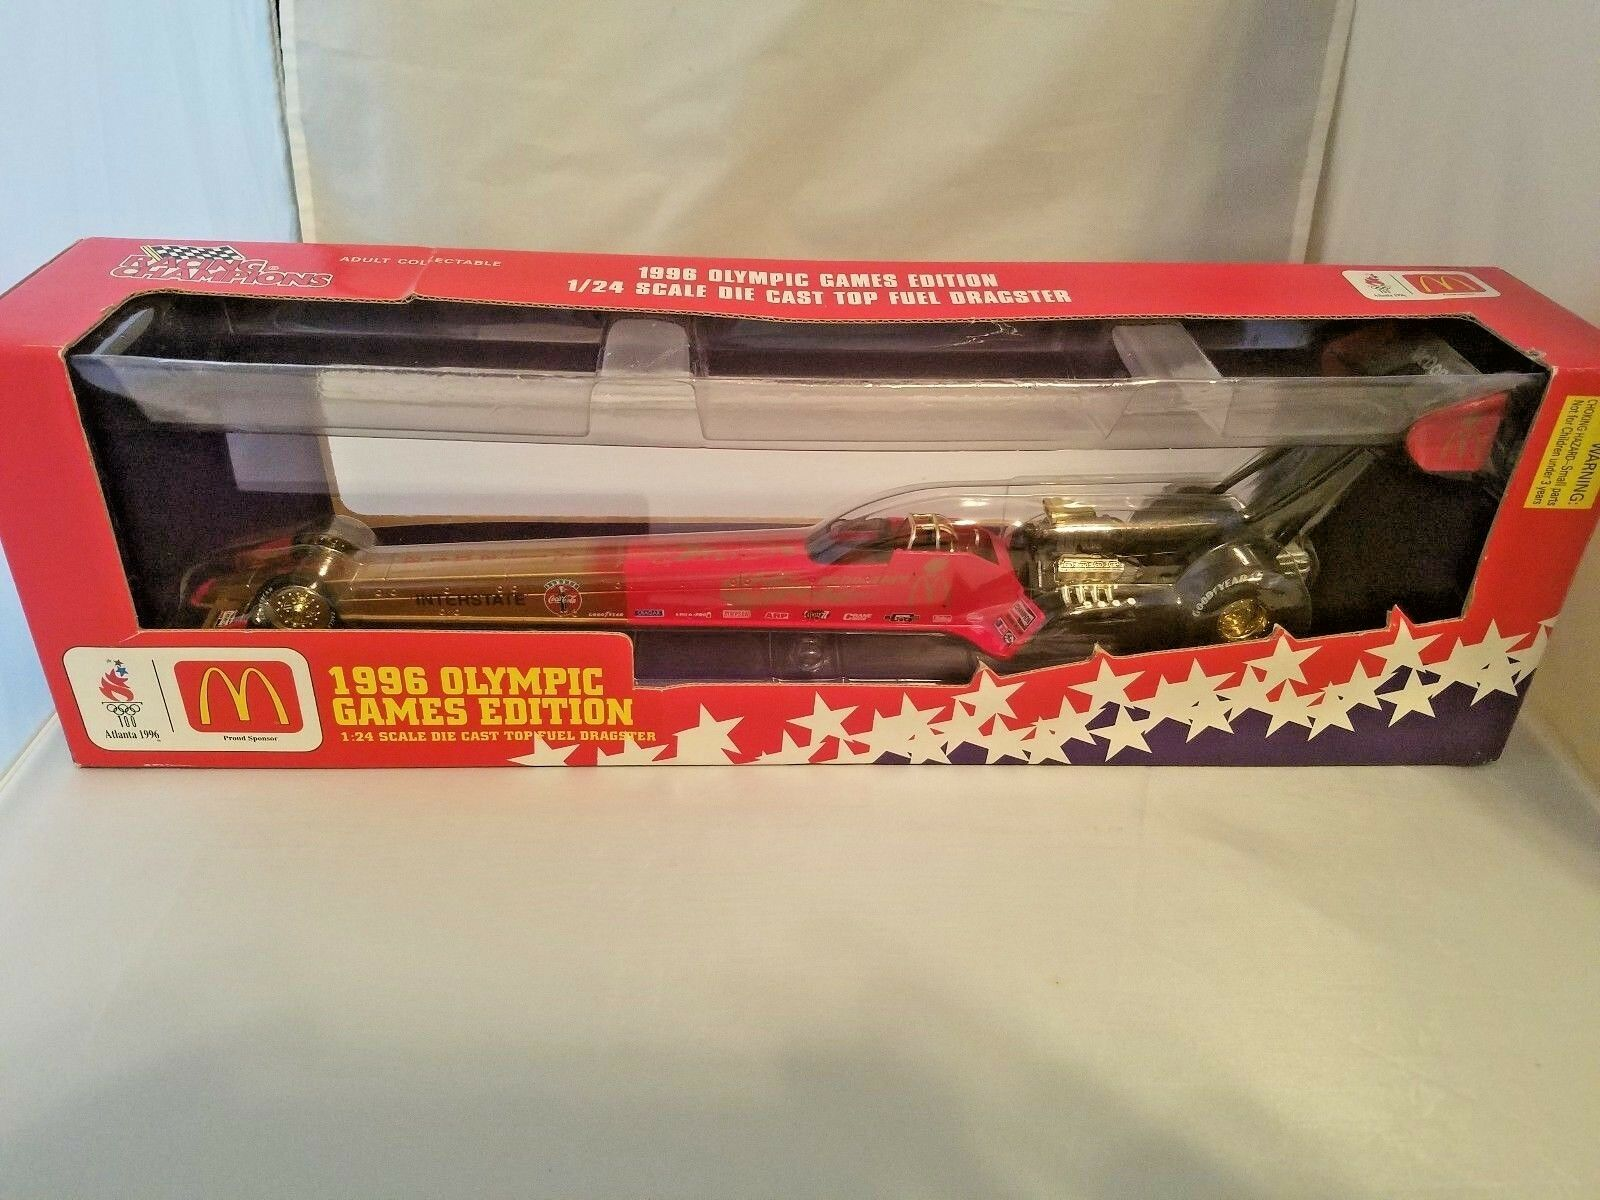 1996 1996 1996 McDonalds Olympic Games Edition 1/24 DieCast Top Fuel Dragster (NIB) GEM MT 425422